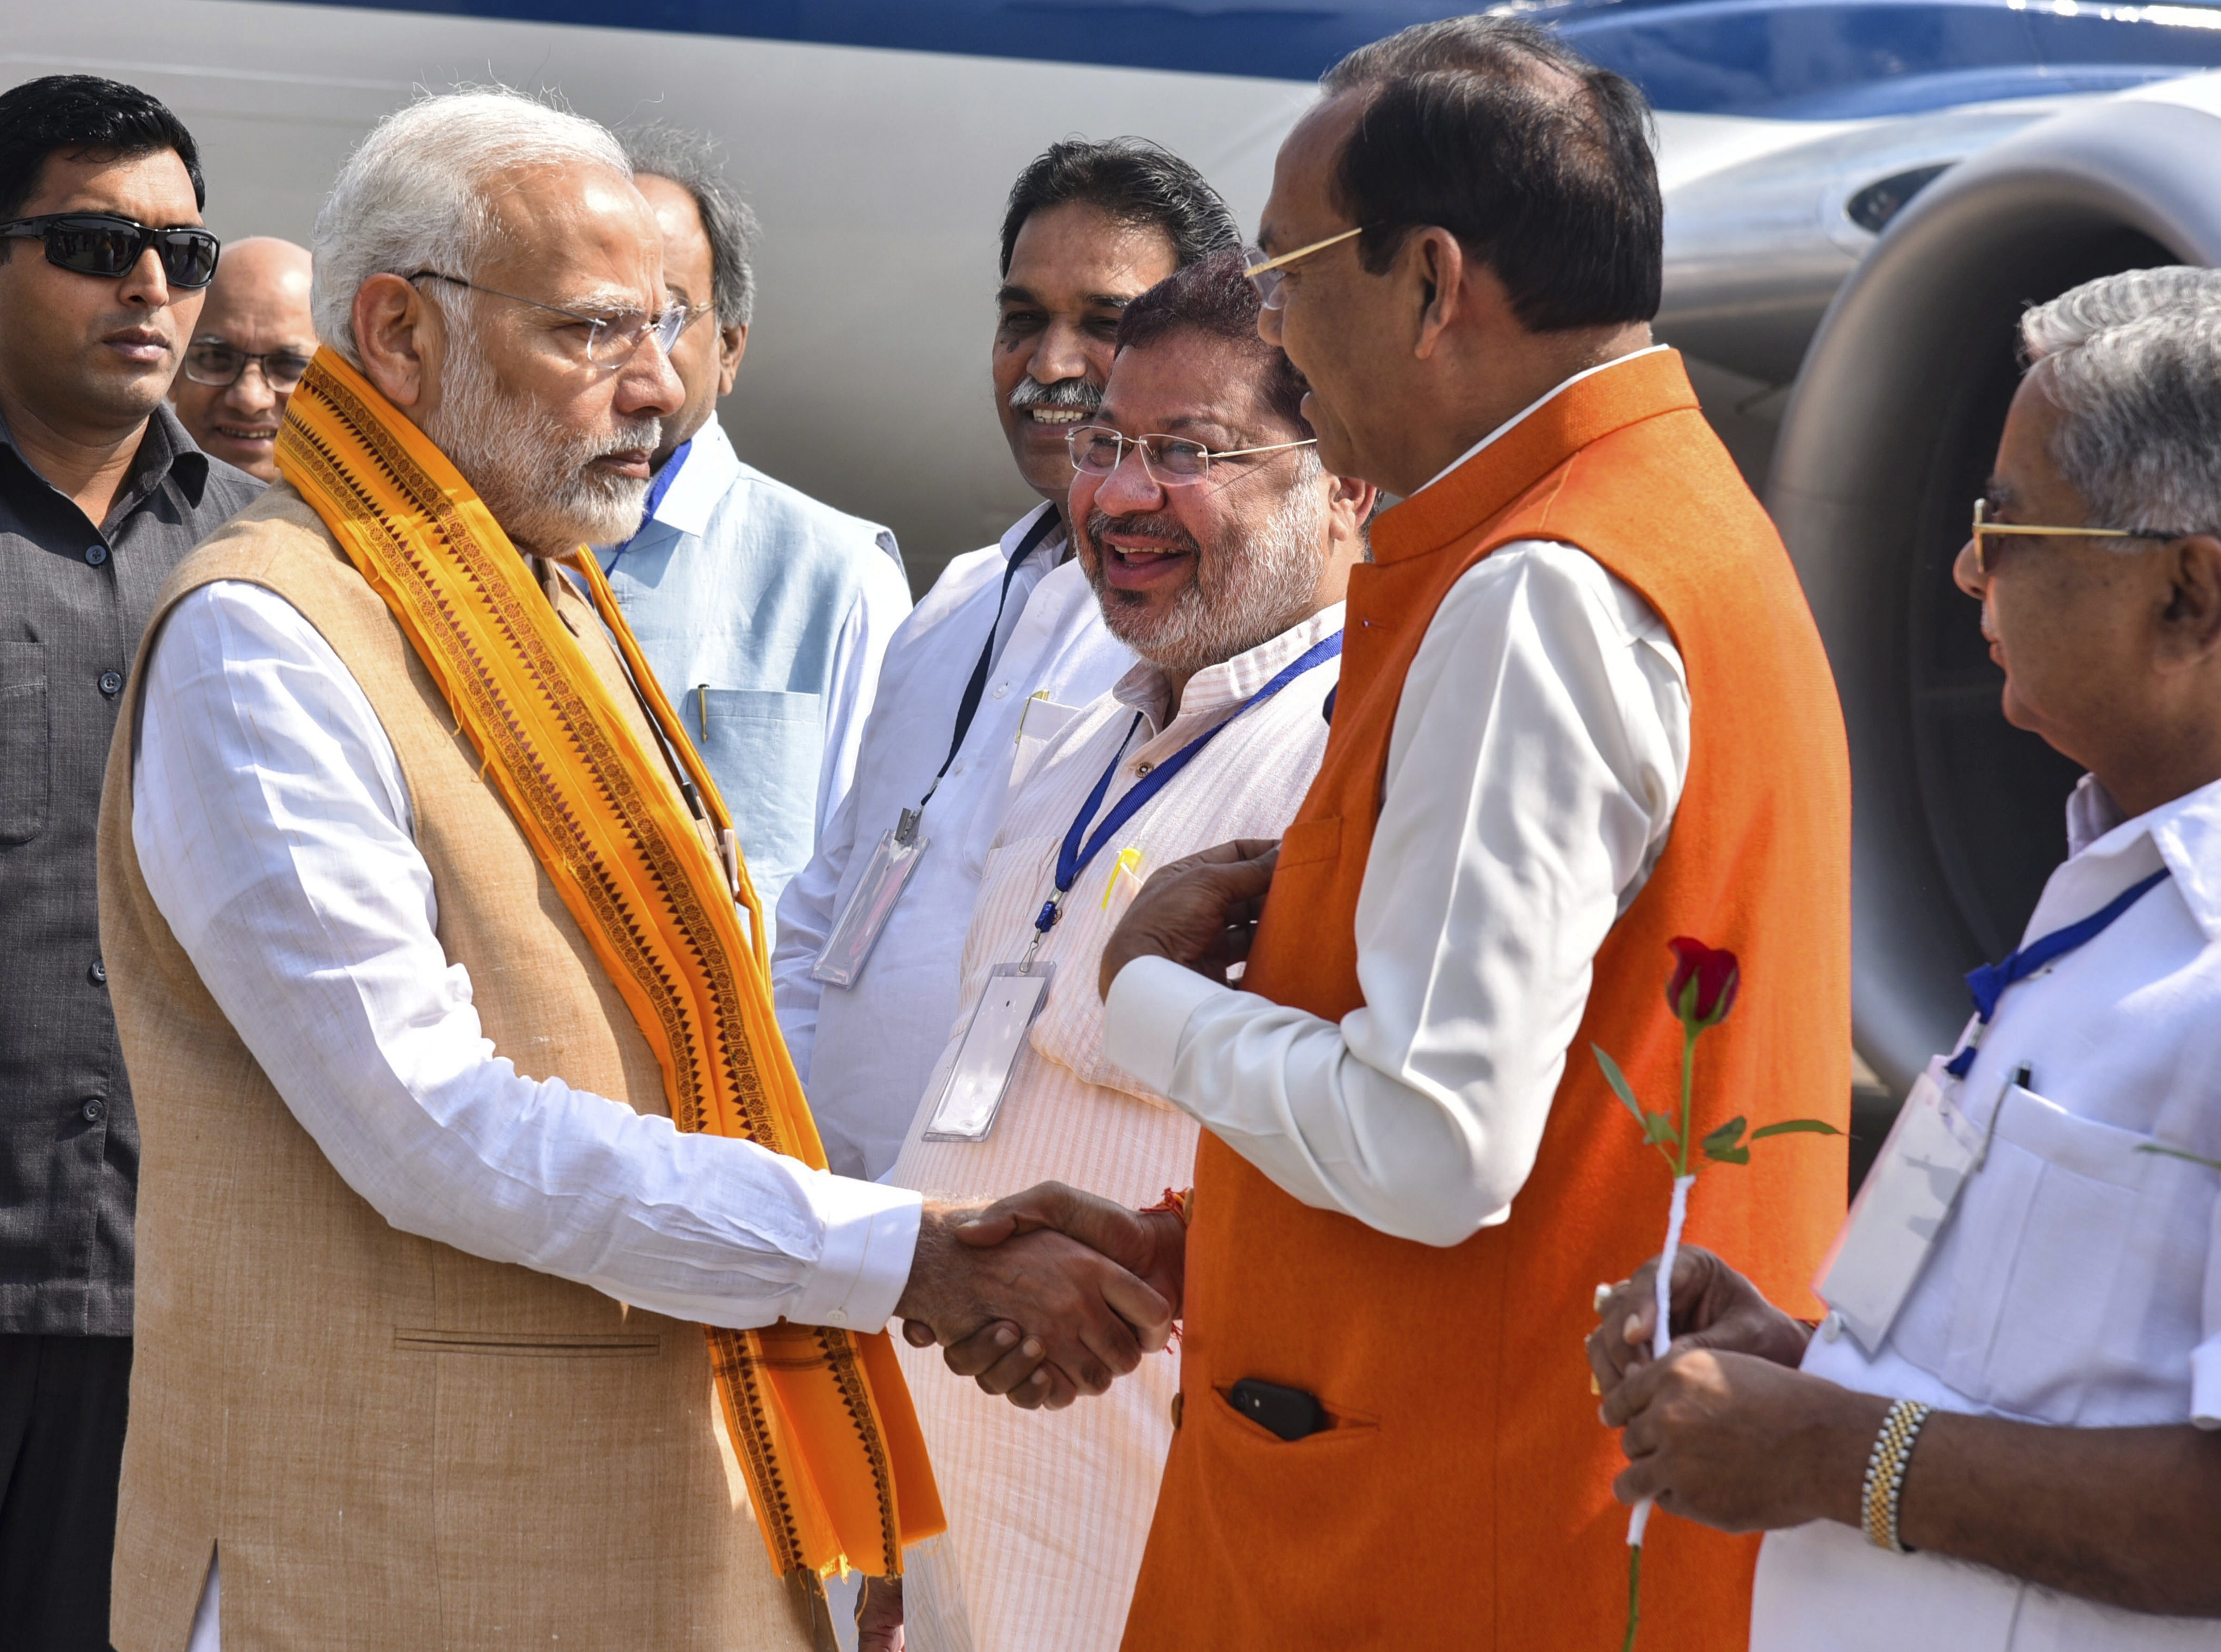 Prime Minister Narendra Modi is welcomed by the BJP leaders as he arrives at the Airport to attend an election rally at Jagdalpur, in Raipur - PTI